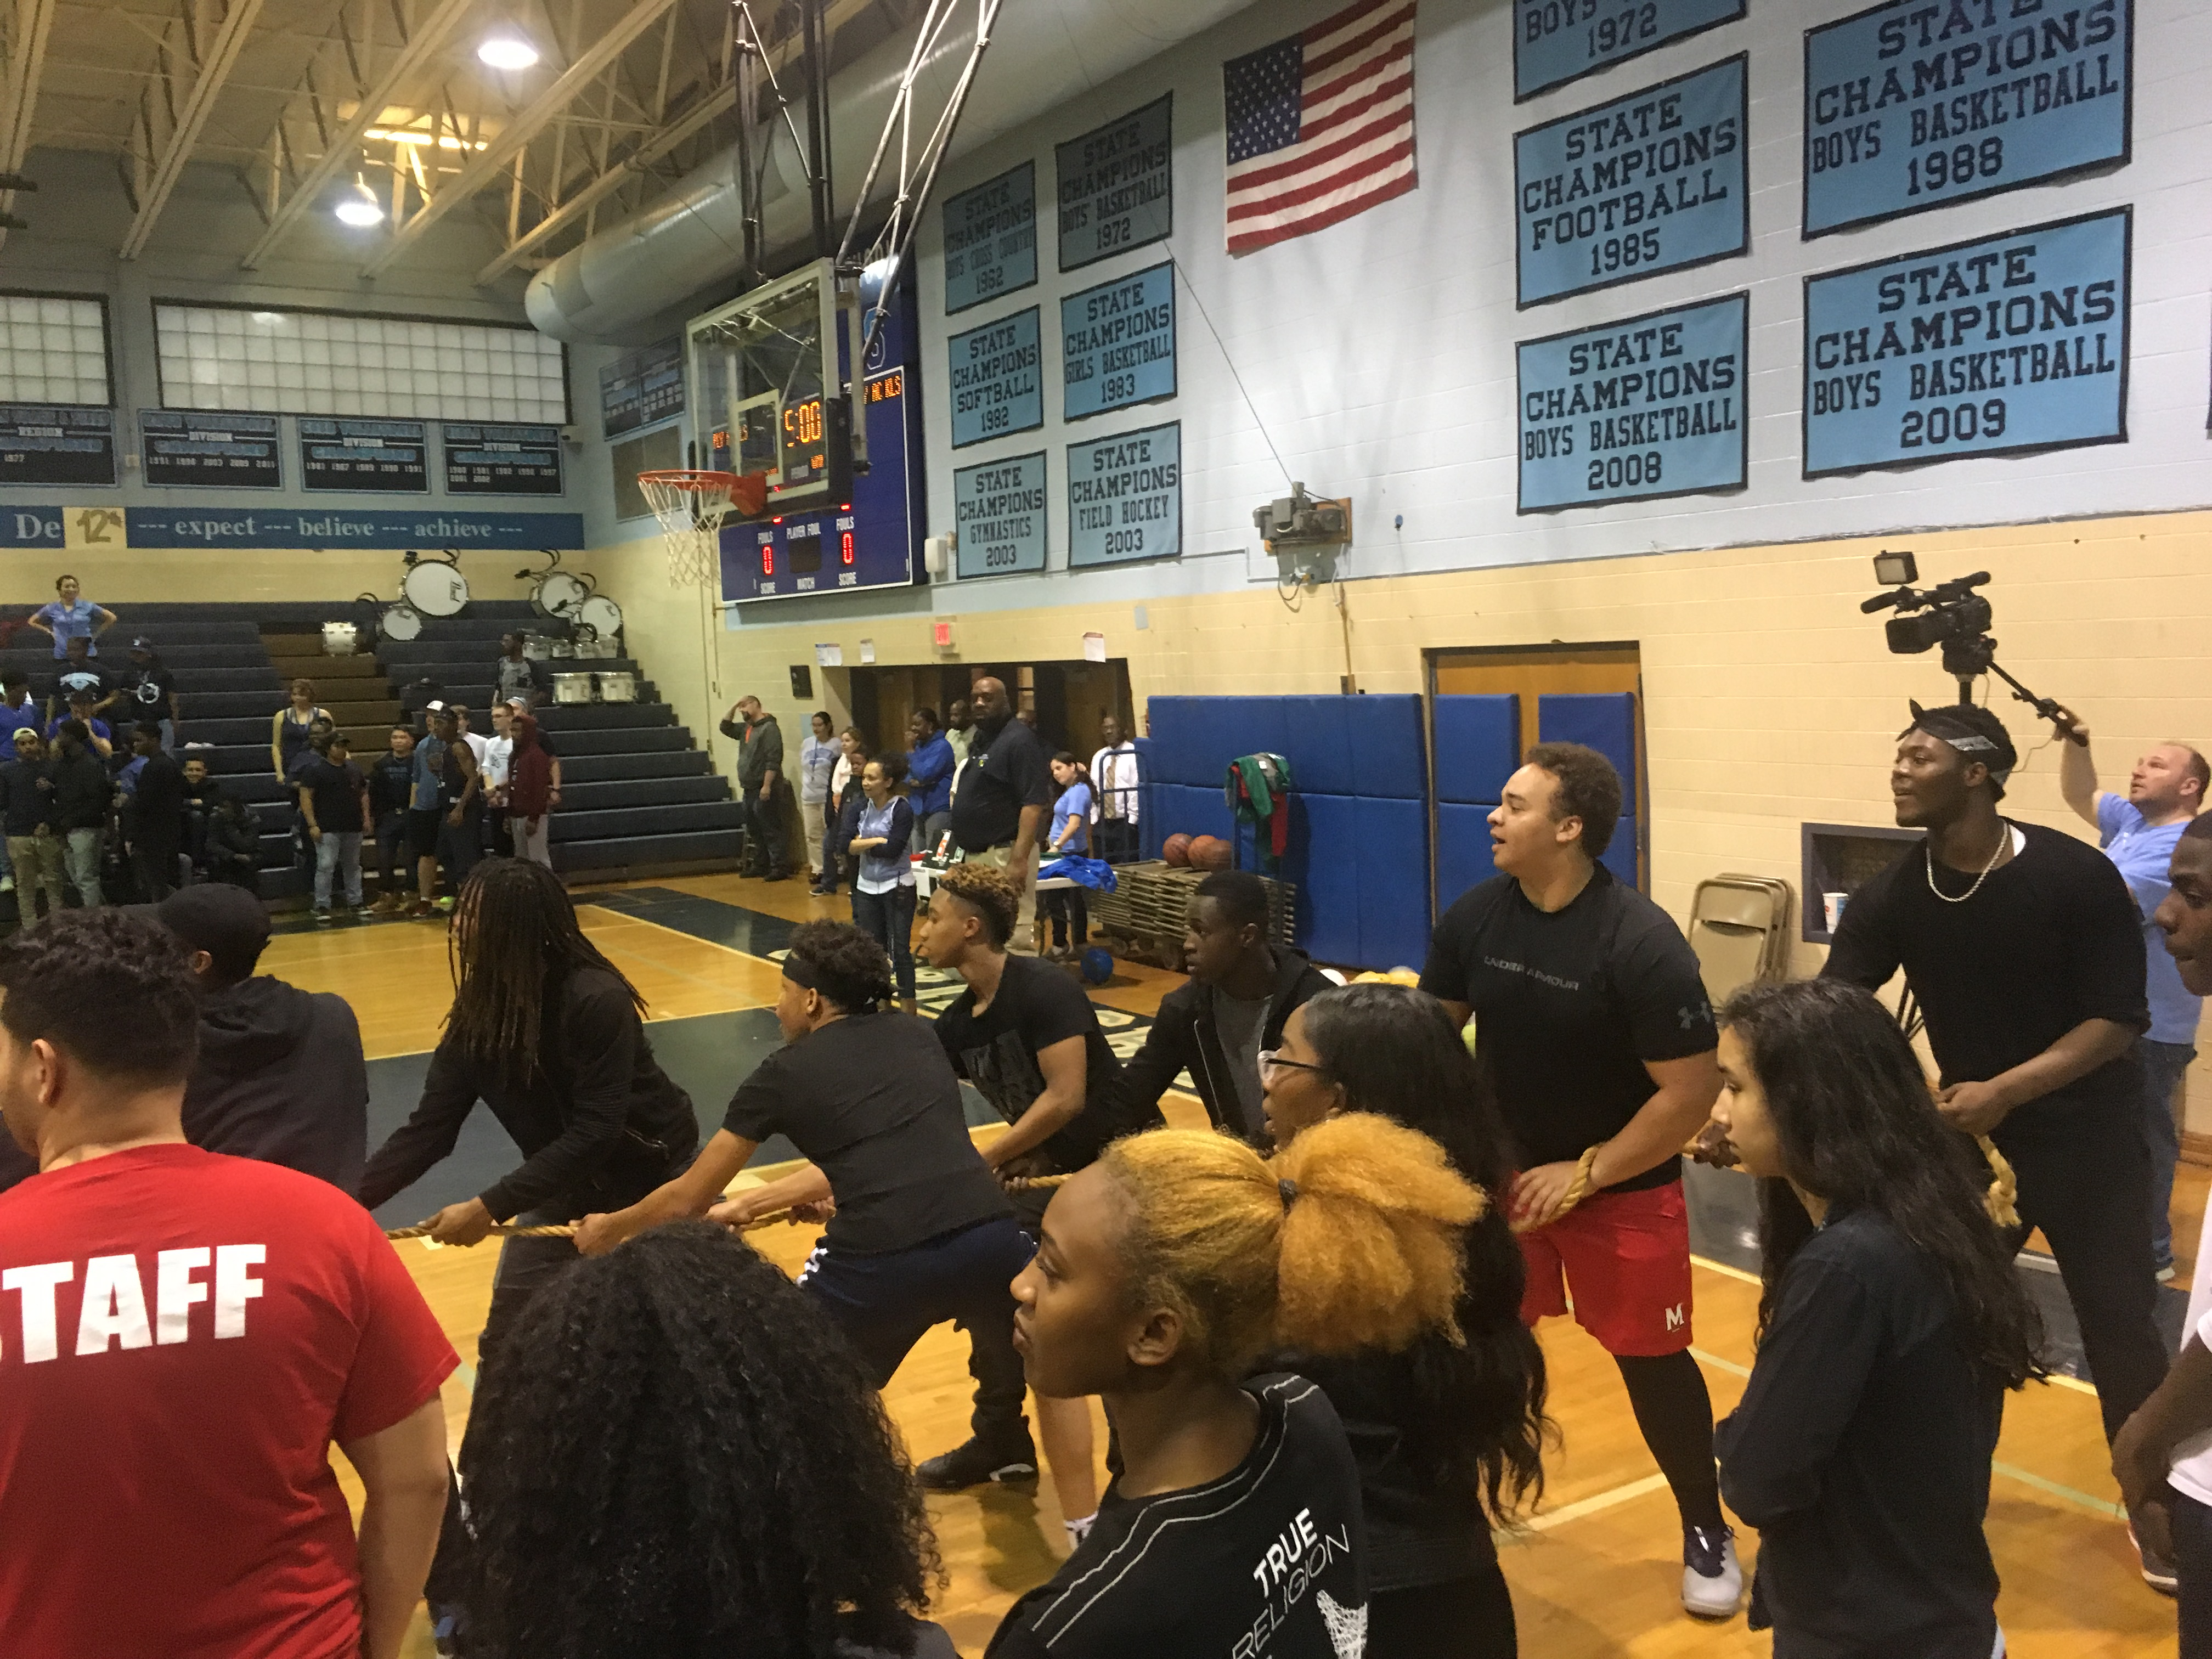 Class Color Day - The juniors really showed their school spirit wearing all black as they faced off against the freshman in a heated tug of war.